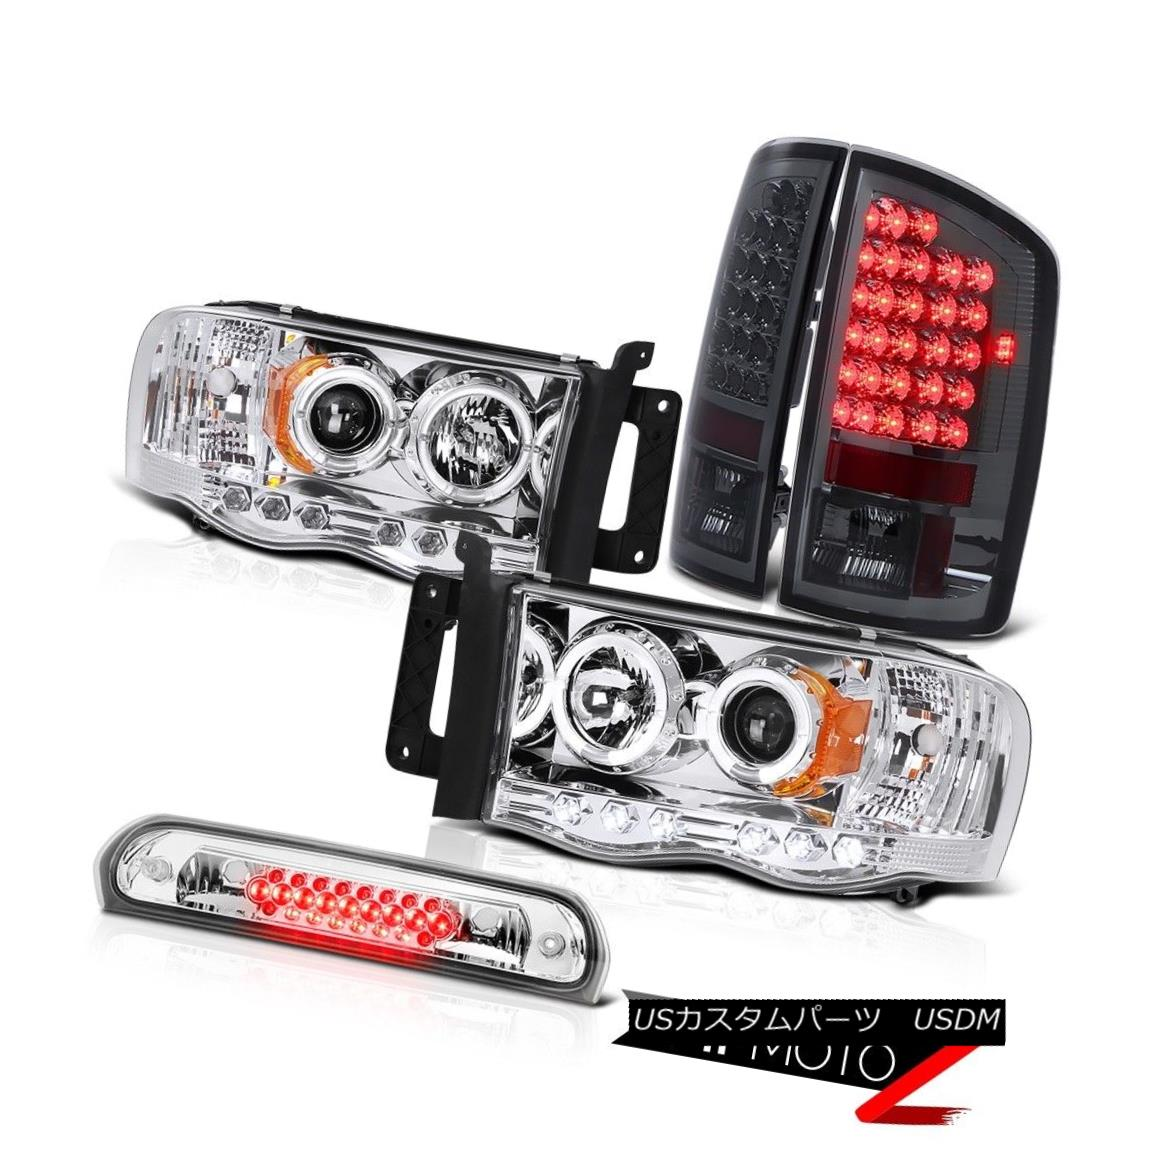 テールライト L.E.D Halo Headlights Signal Tail Light Euro Brake LED 02 03 04 05 Ram PowerTech L.E.D HaloヘッドライトシグナルテールライトユーロブレーキLED 02 03 04 05 Ram PowerTech